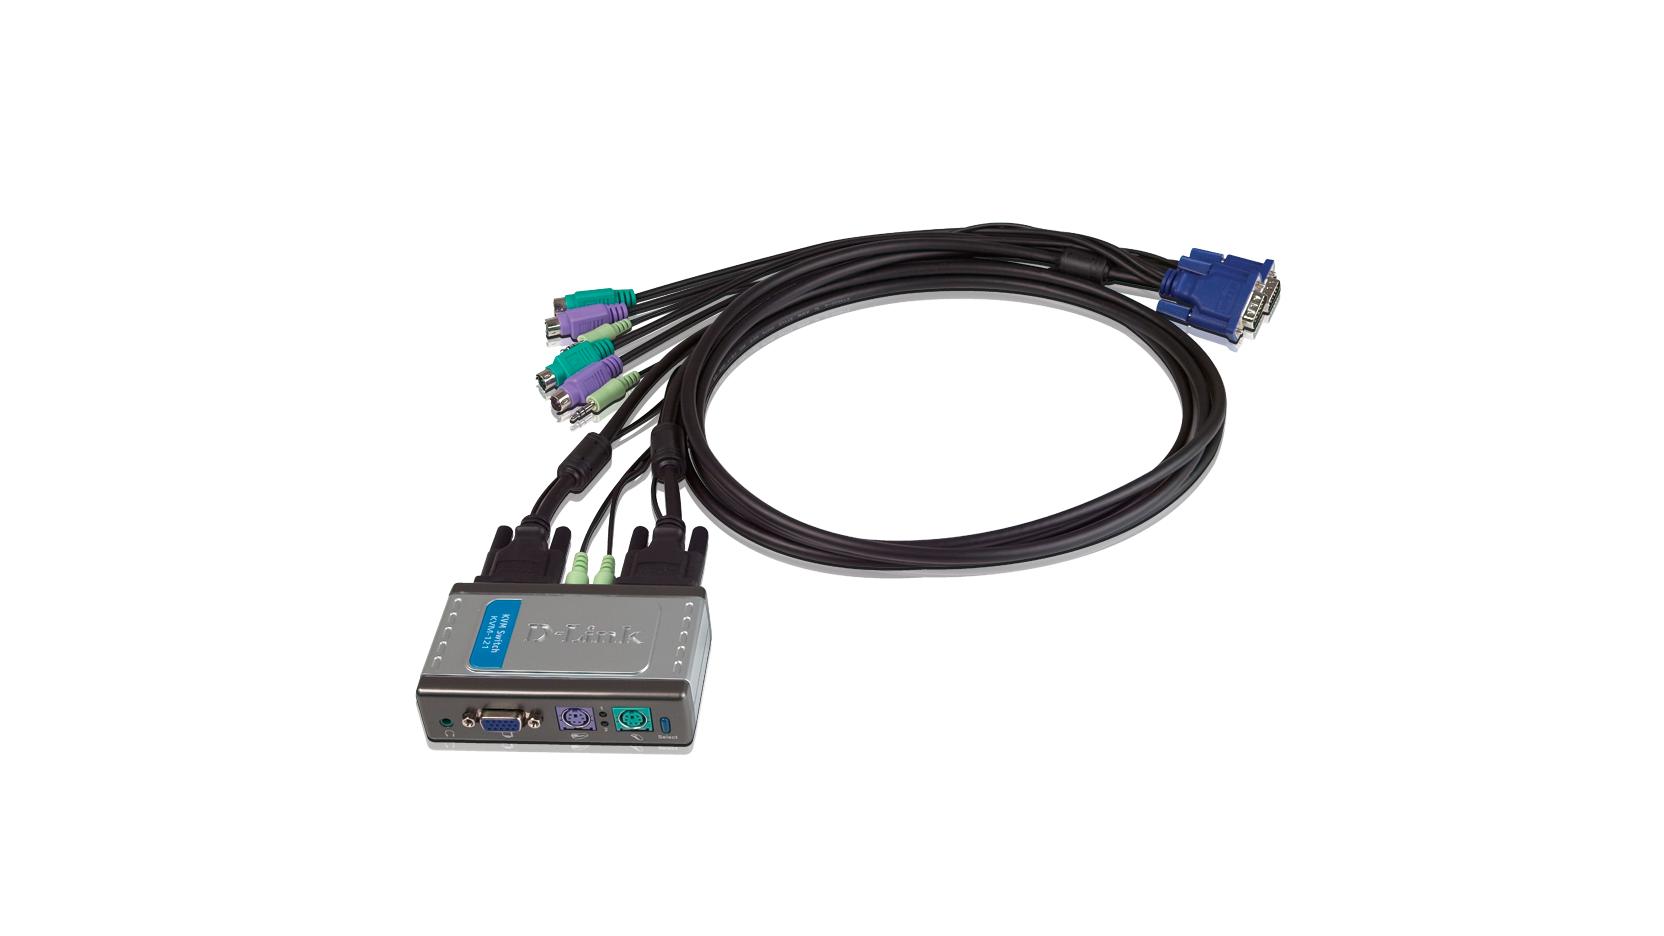 2-port kvm switch with audio support